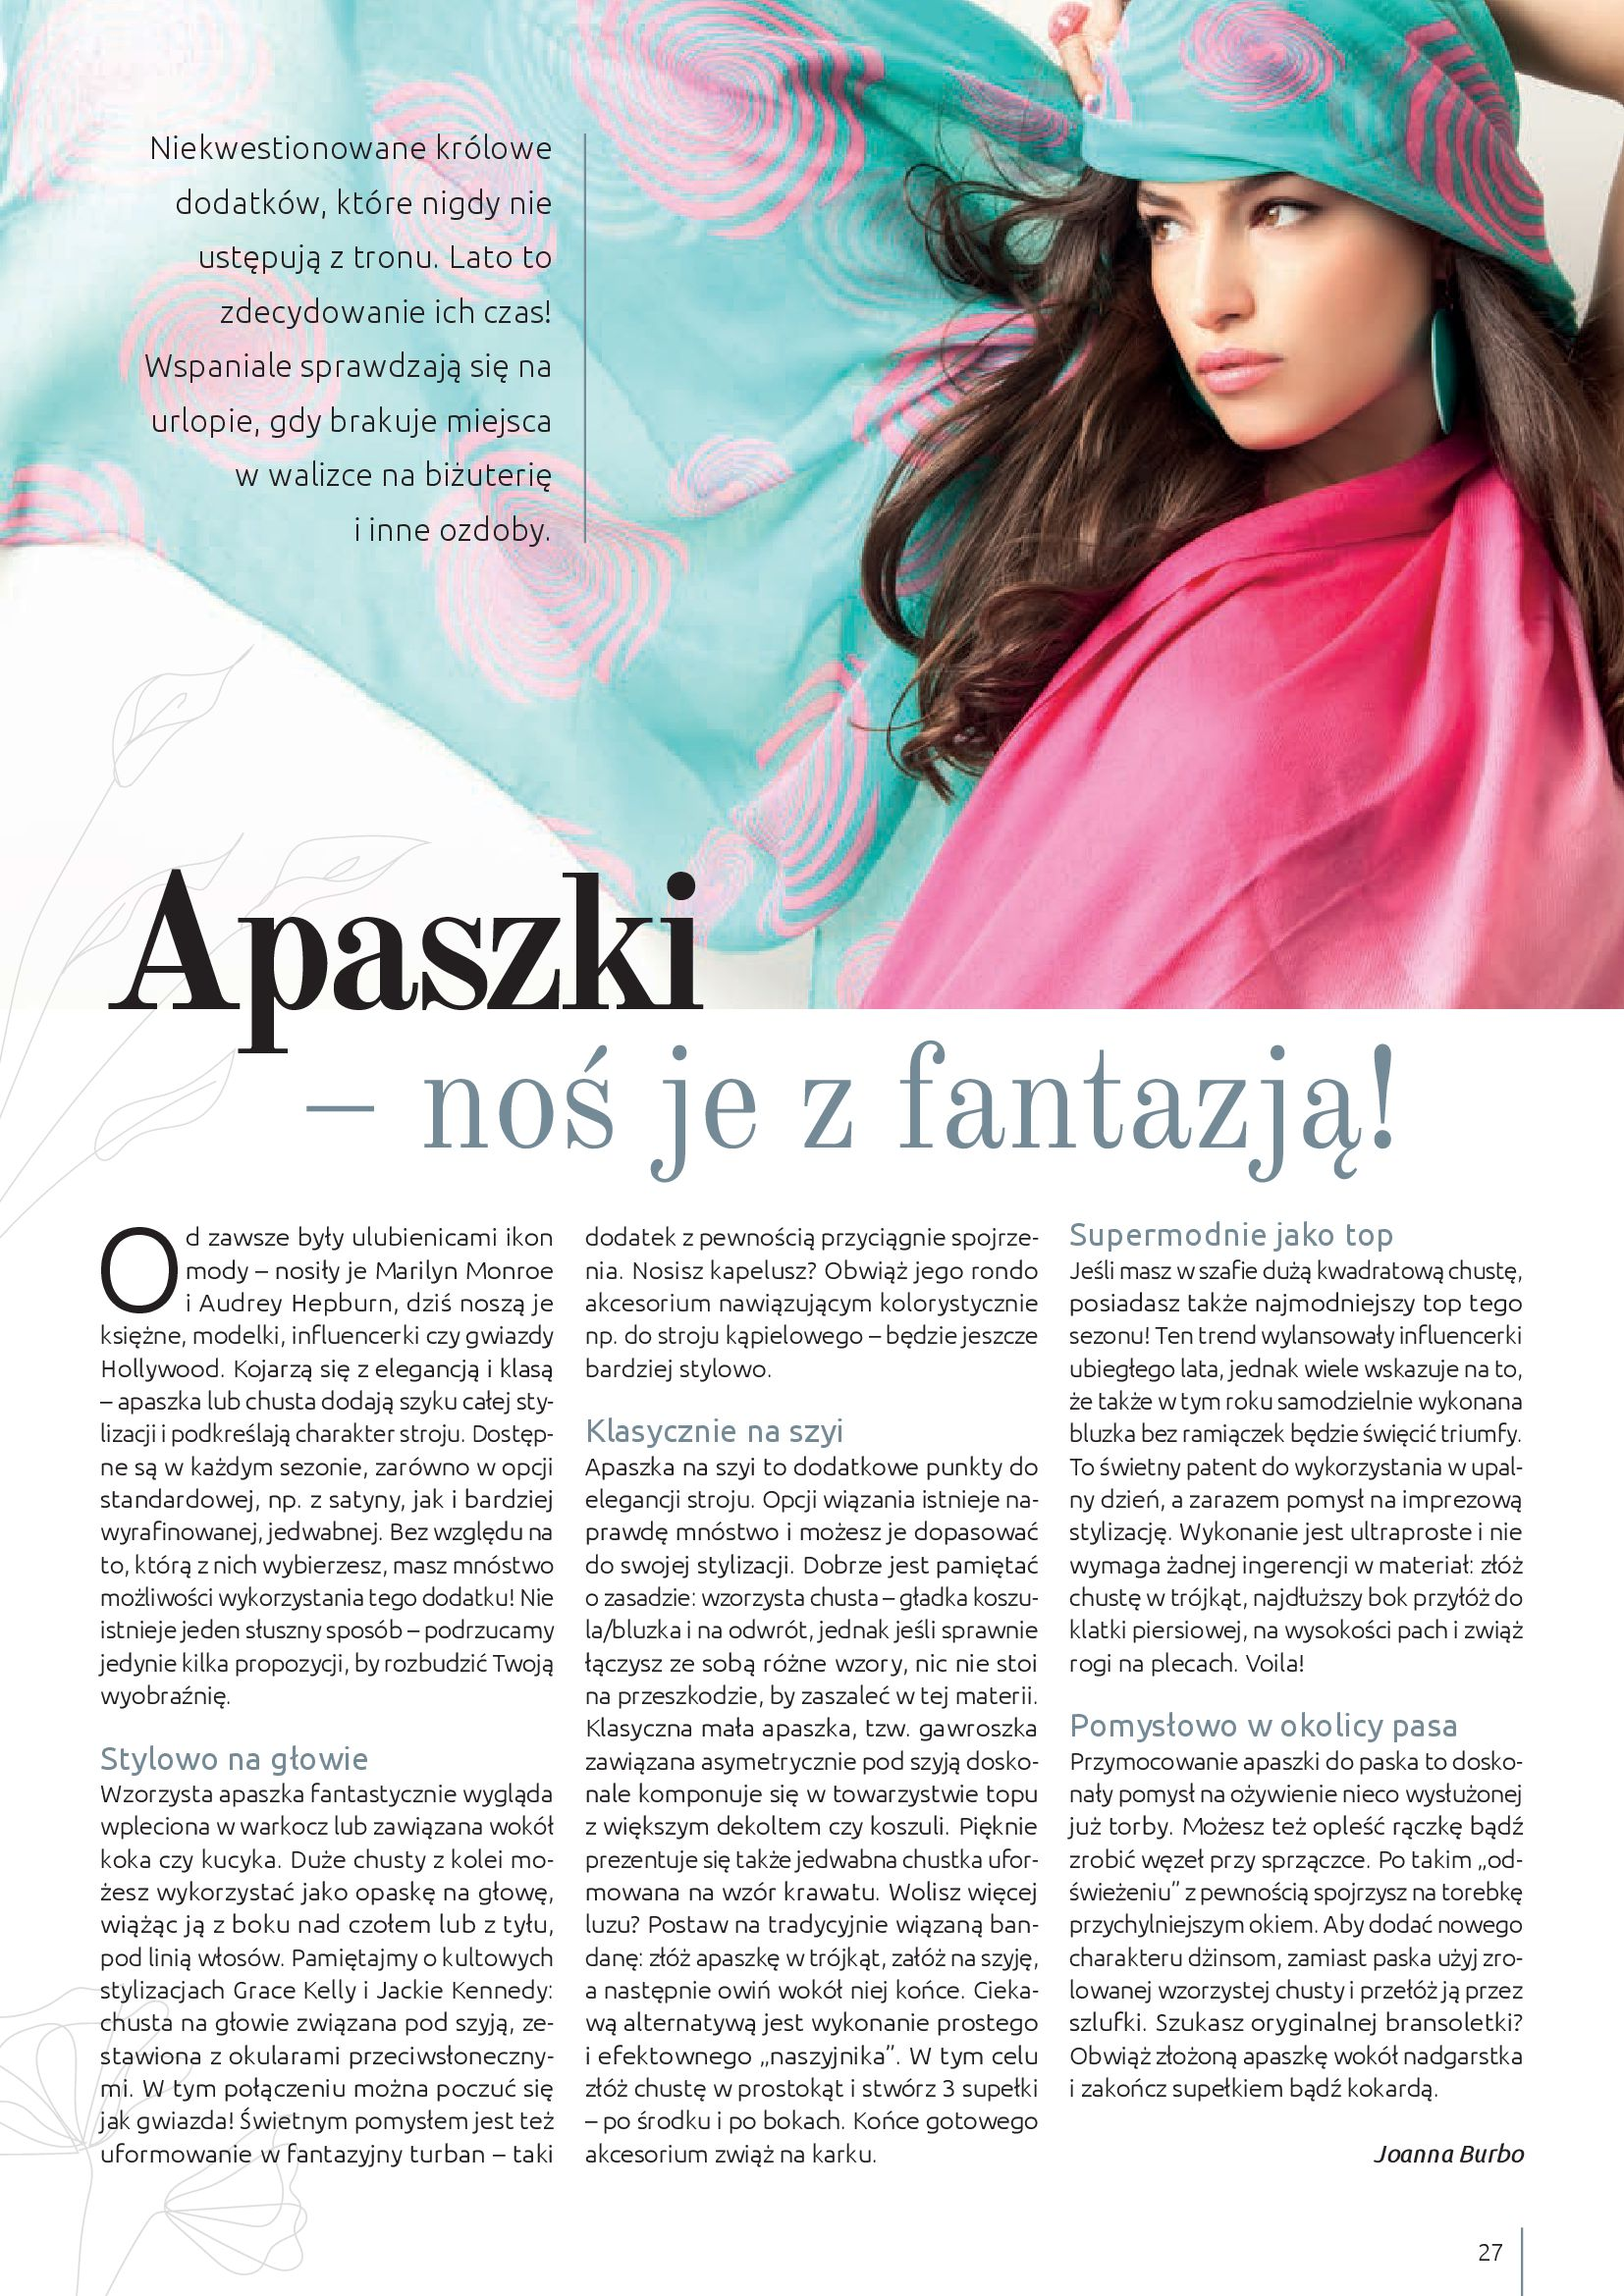 Gazetka Drogerie Jasmin: Gazetka Drogerie Jasmin 2021-08-24 page-27